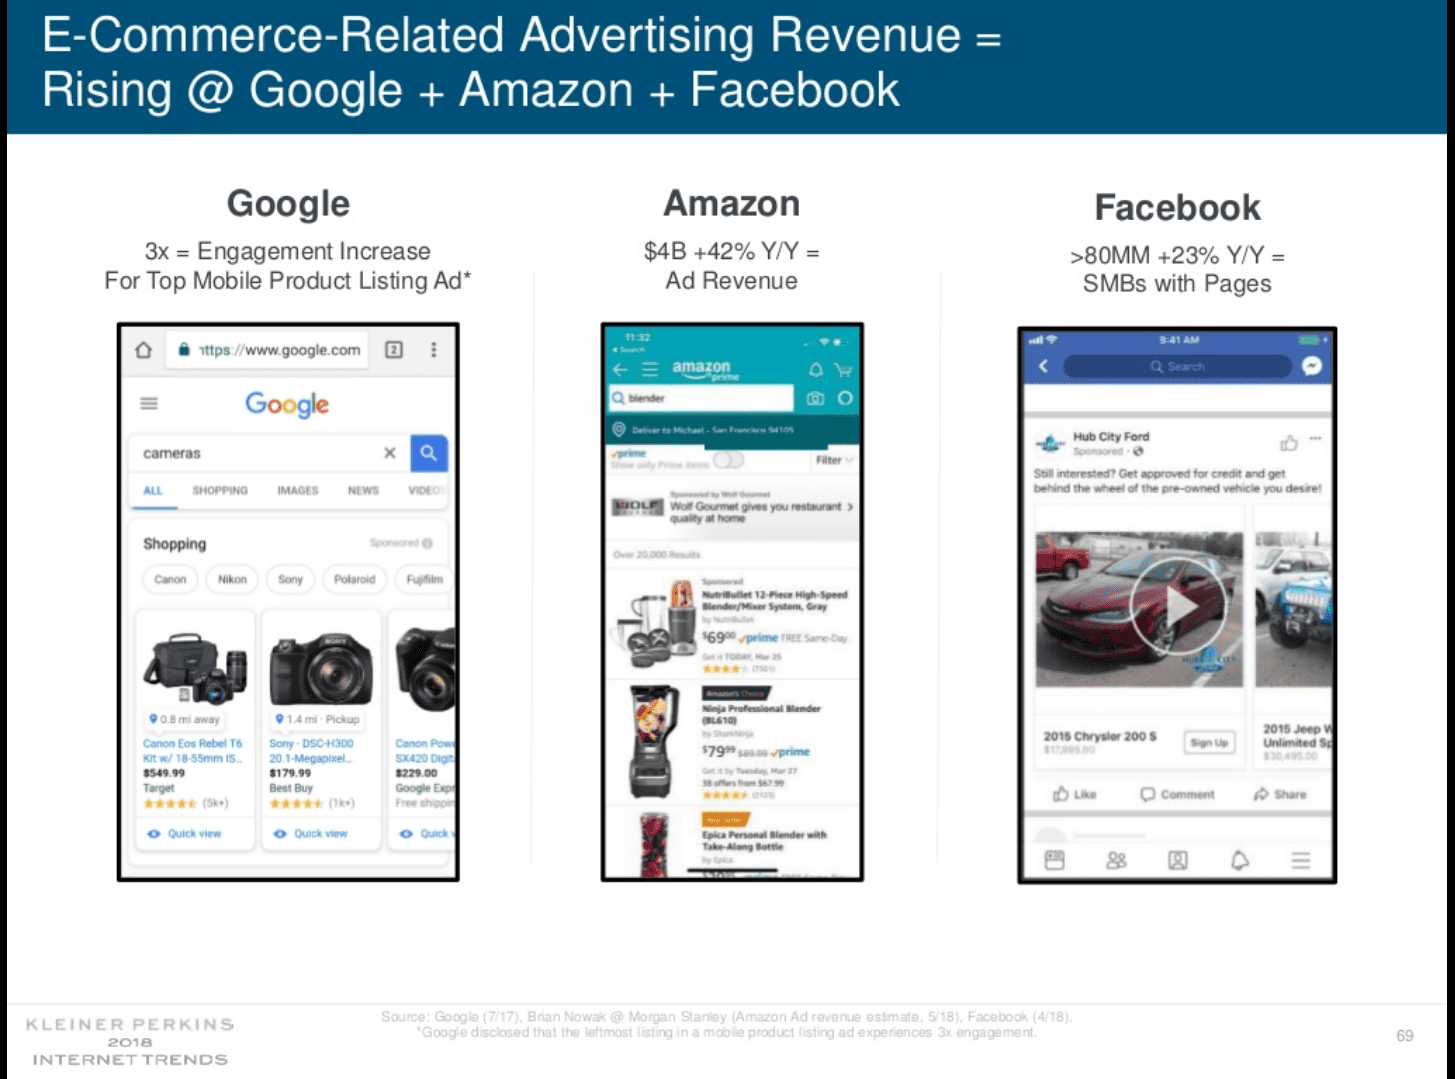 Slide 69 from Kleiner Perkins Caufield &amp; Byers' Internet Trends 2018 report shows the growth in ecommerce-related advertising on each of Google, Amazon, and Facebook. <em>Click image to enlarge.</em>